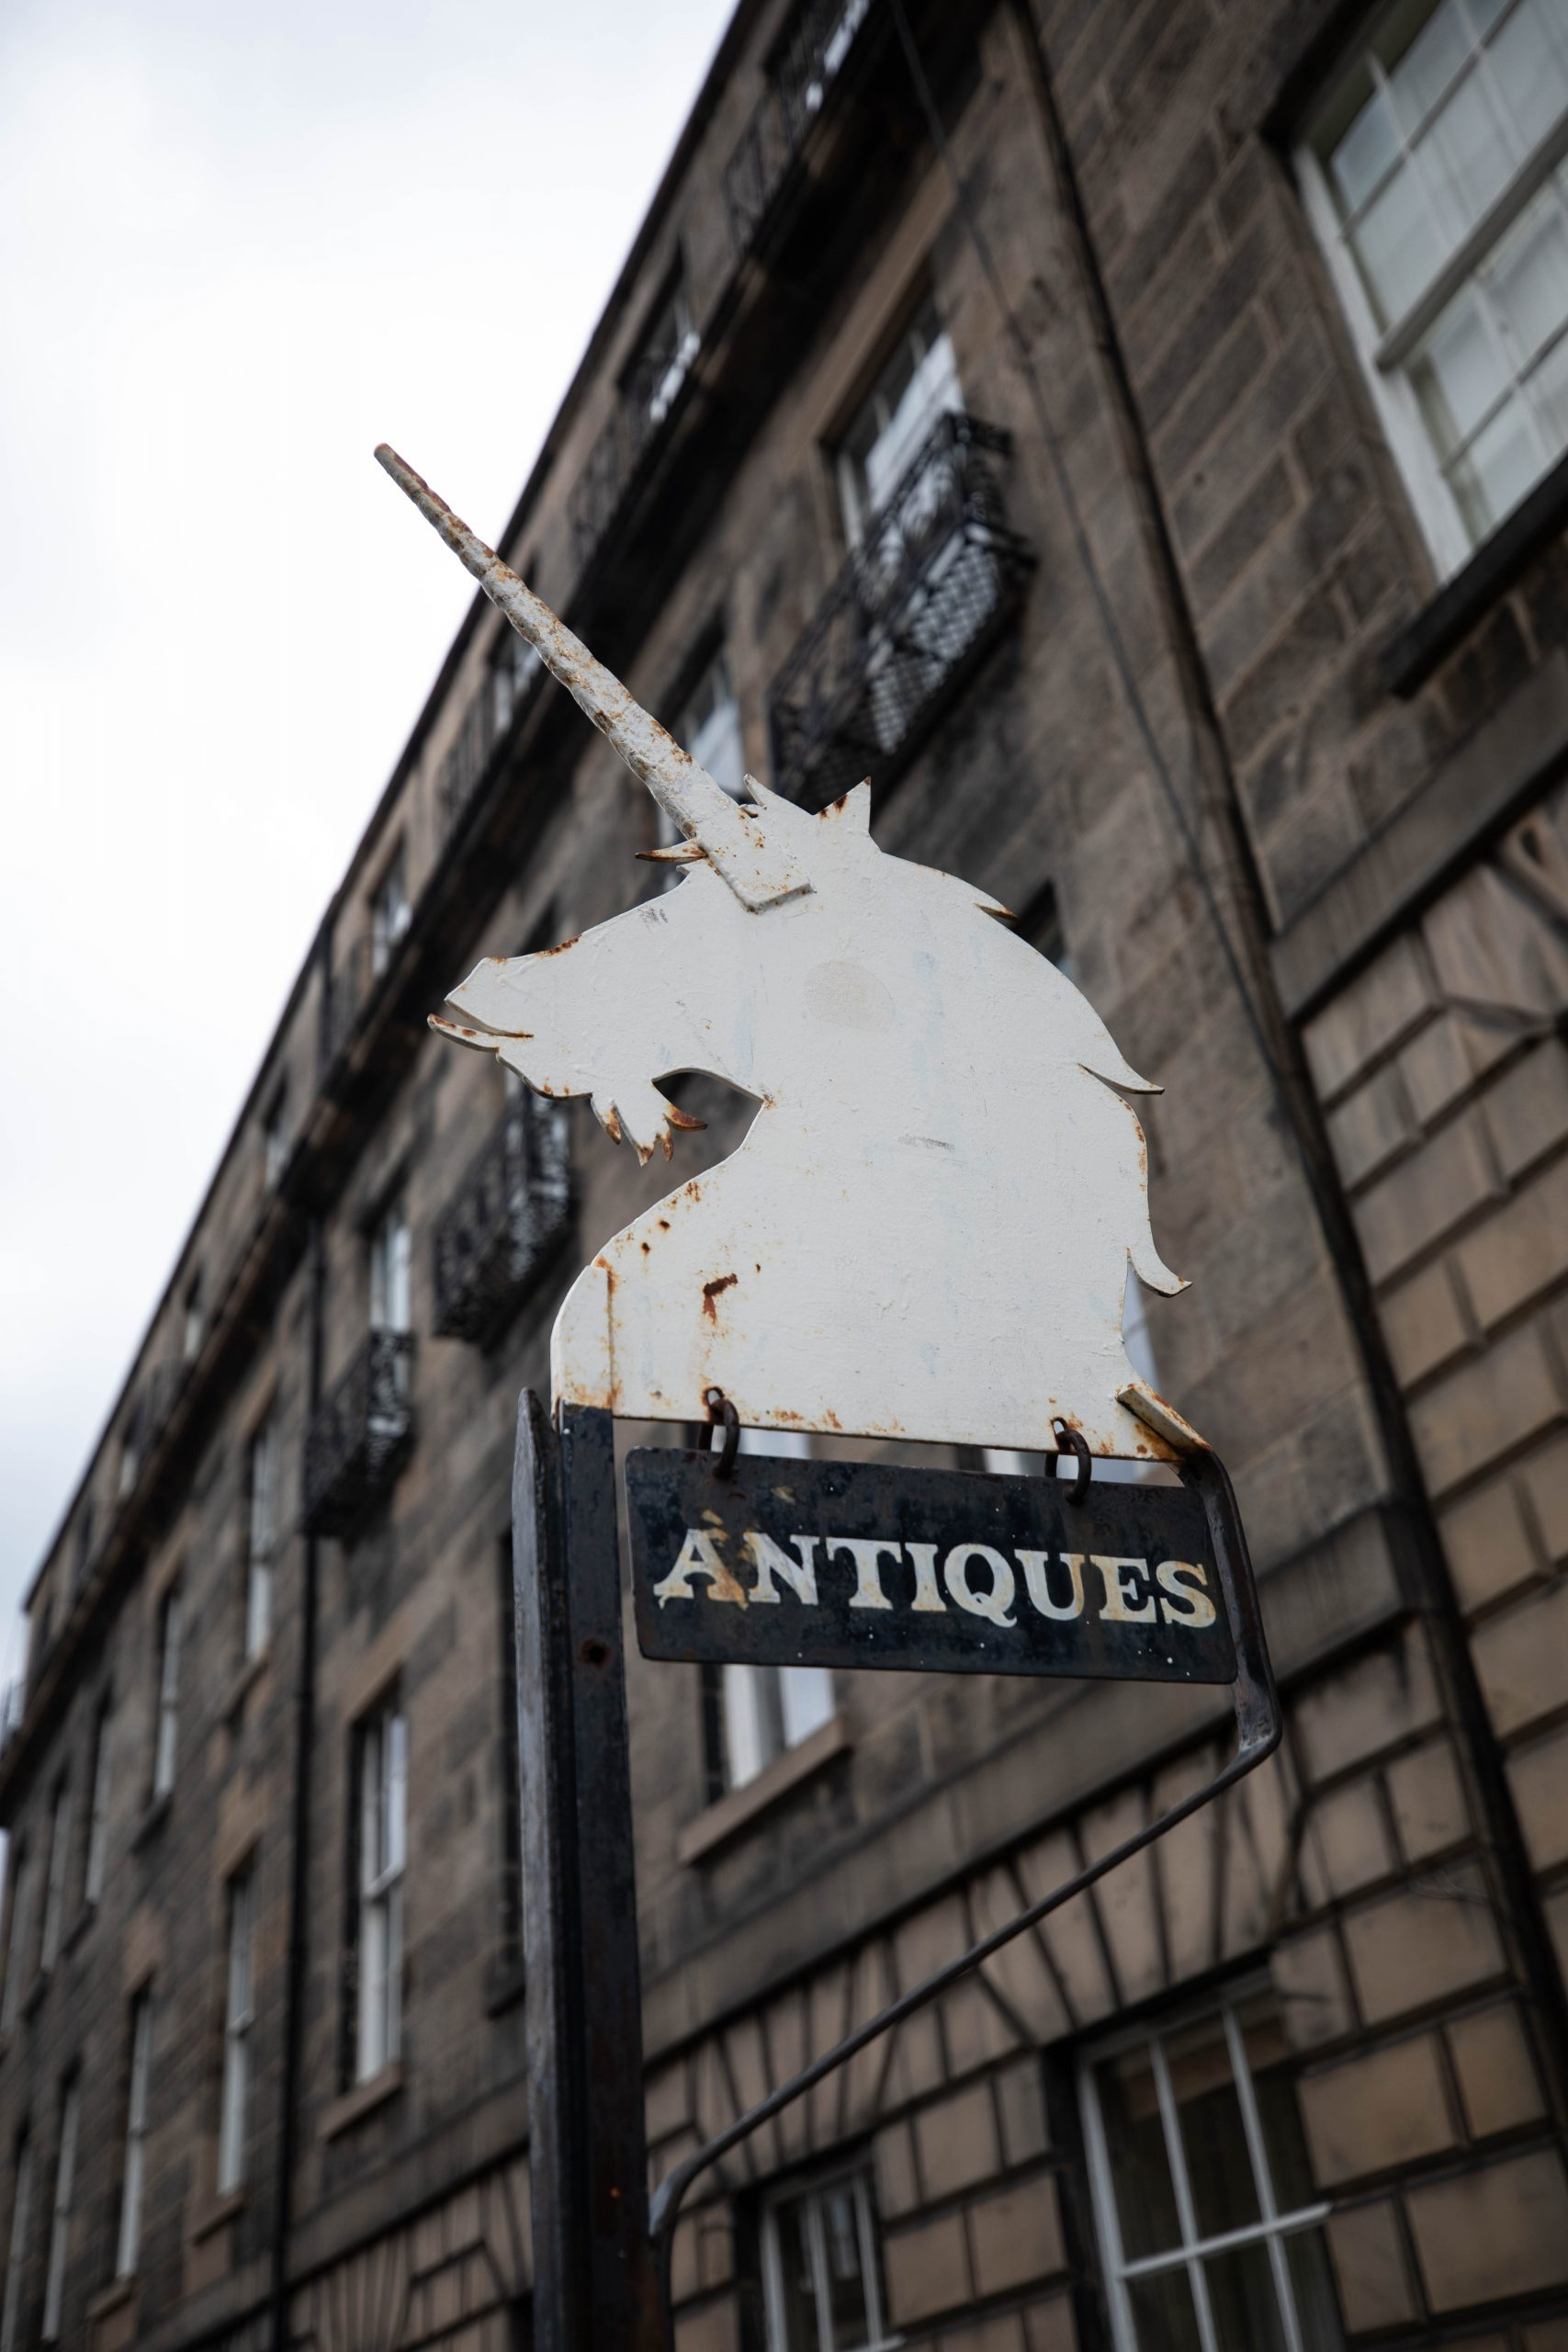 Edinburgh Old Town Royal Mile Edinburgh the Luxury Travel Guide by Annie Fairfax Where to Eat What to Do Where to Stay Site Seeing in Edinburgh Honeymoon Vacation Ideas